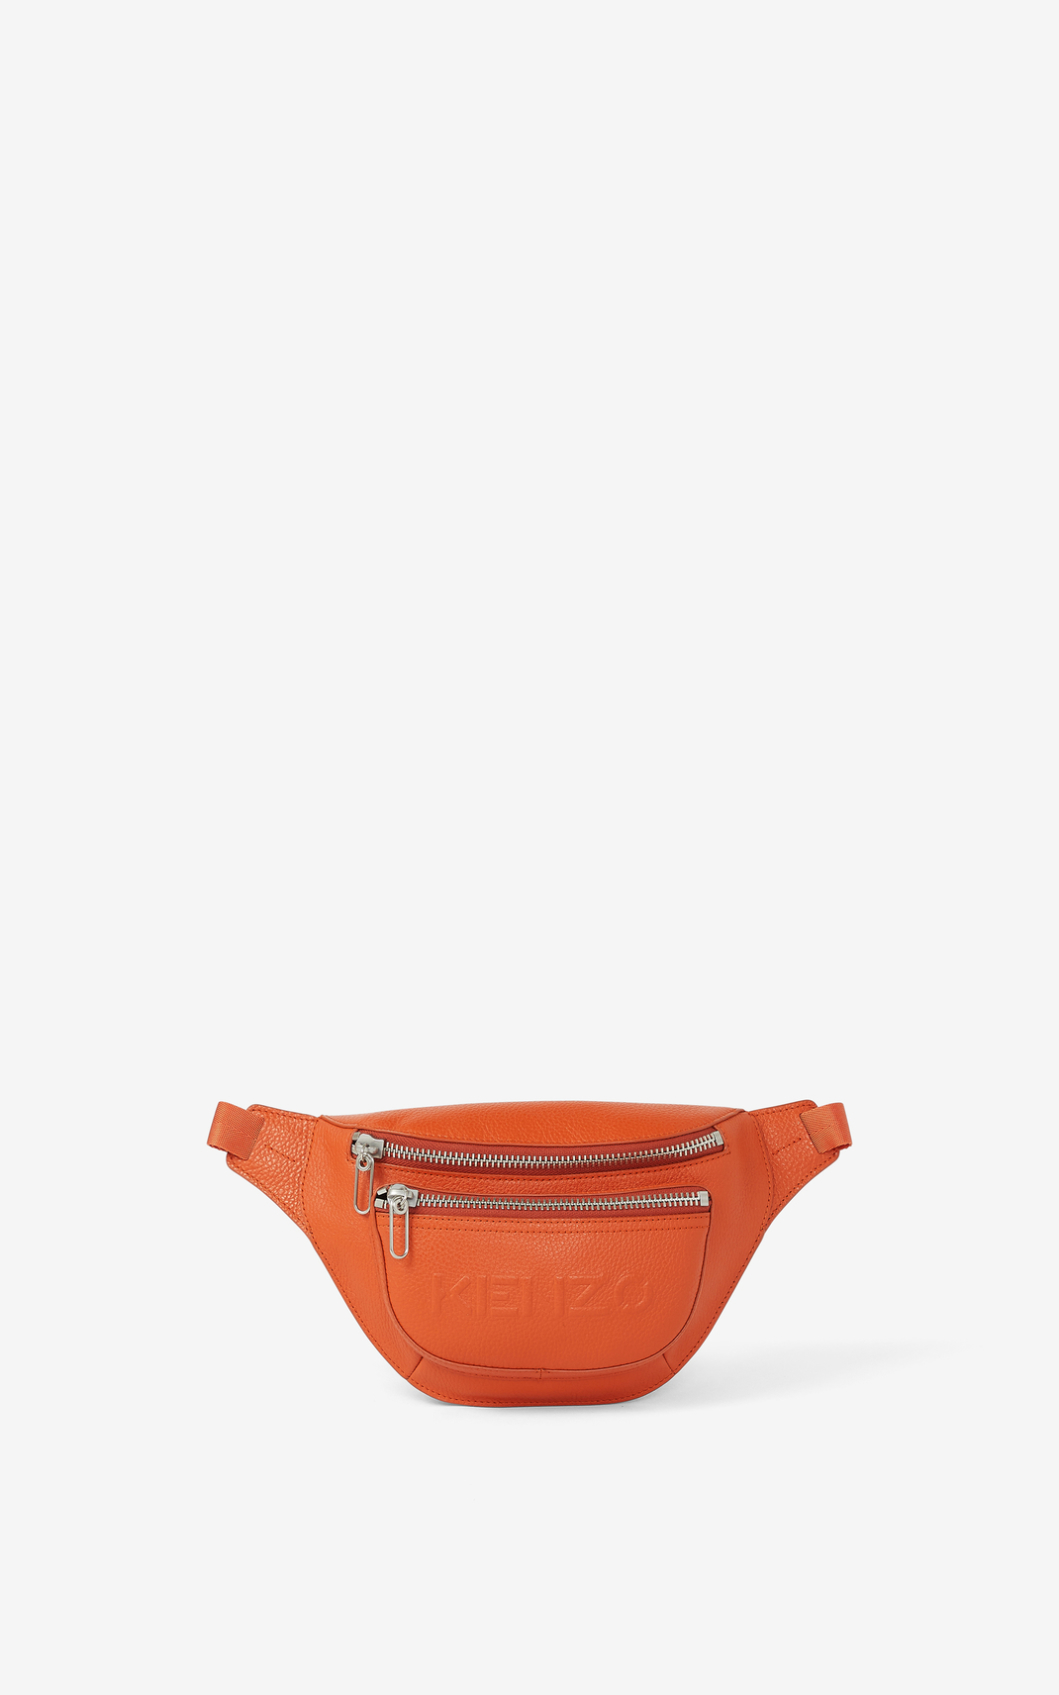 Kenzo Imprint Grained Leather Bumbag